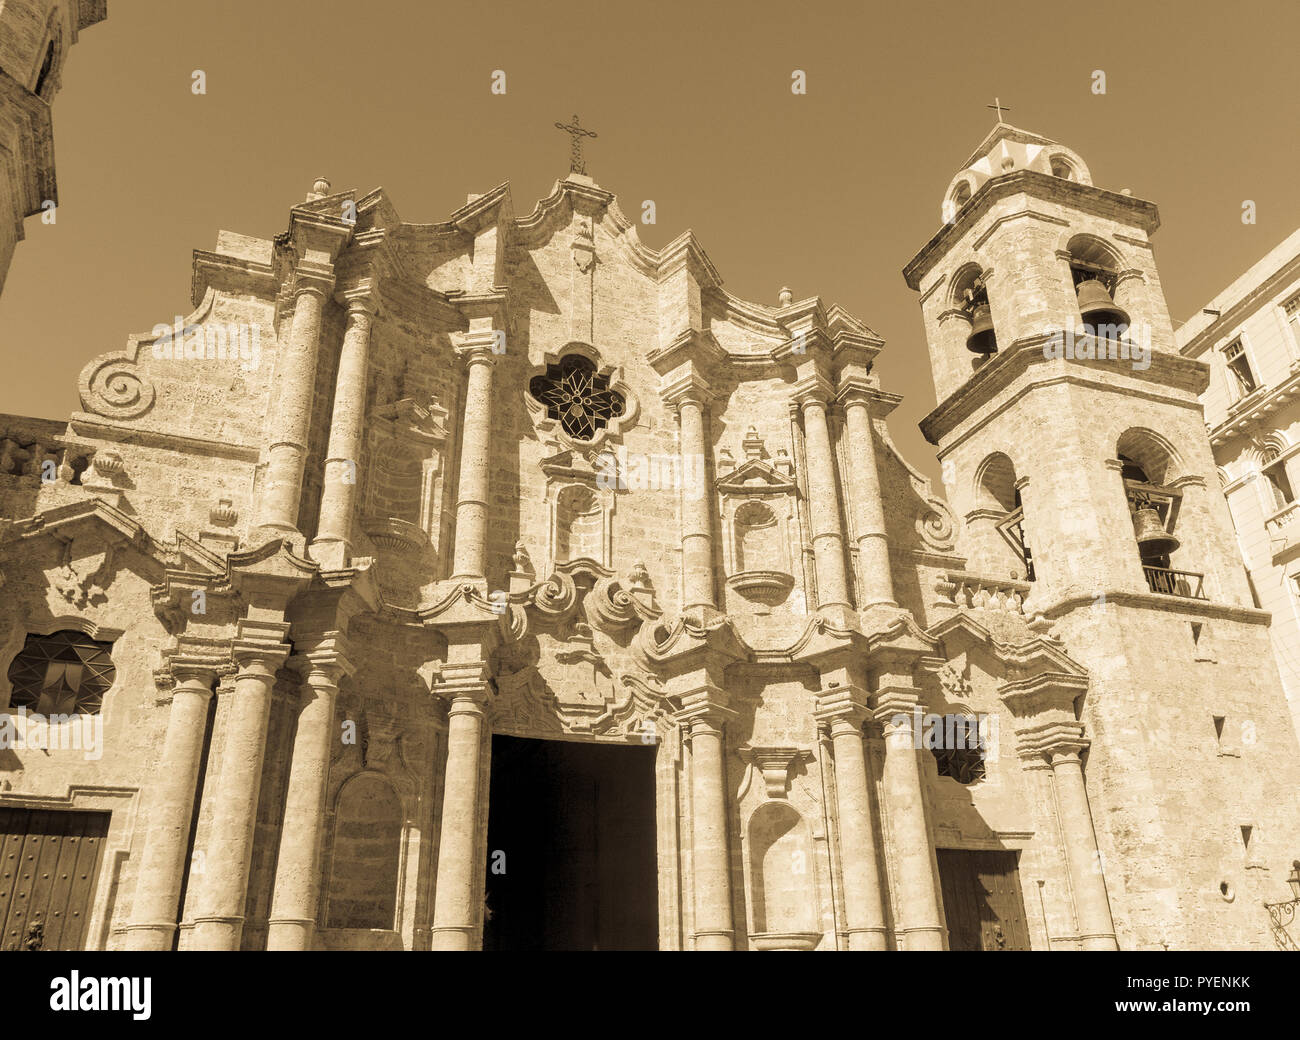 San Cristobal Cathedral, the Havana Cathedral. Cathedral Square is one of the main squares in Old Havana, Cuba - Stock Image